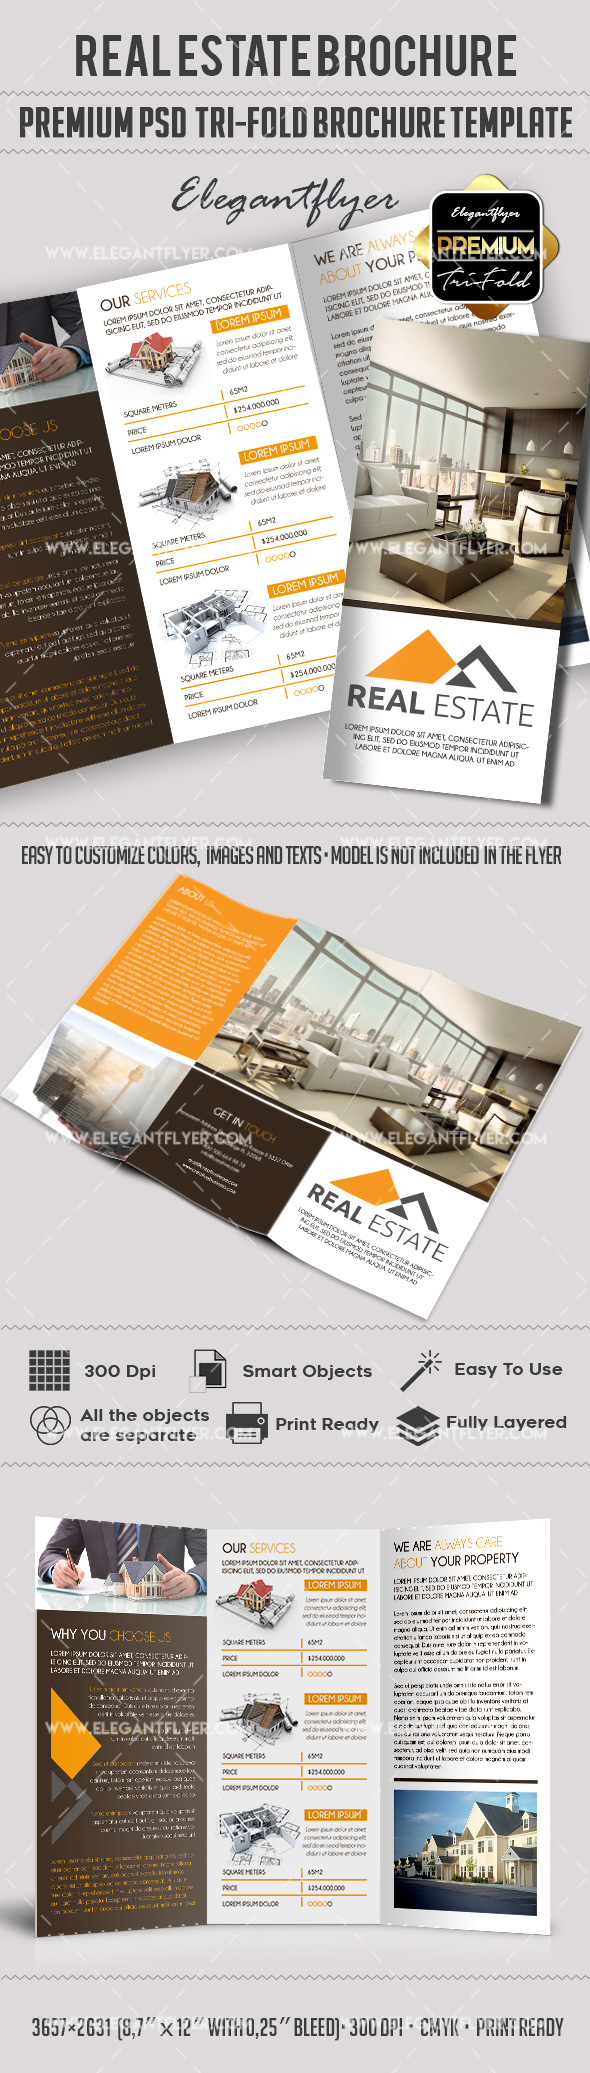 Psd brochure for commercial real estate by elegantflyer for Real estate brochure templates psd free download